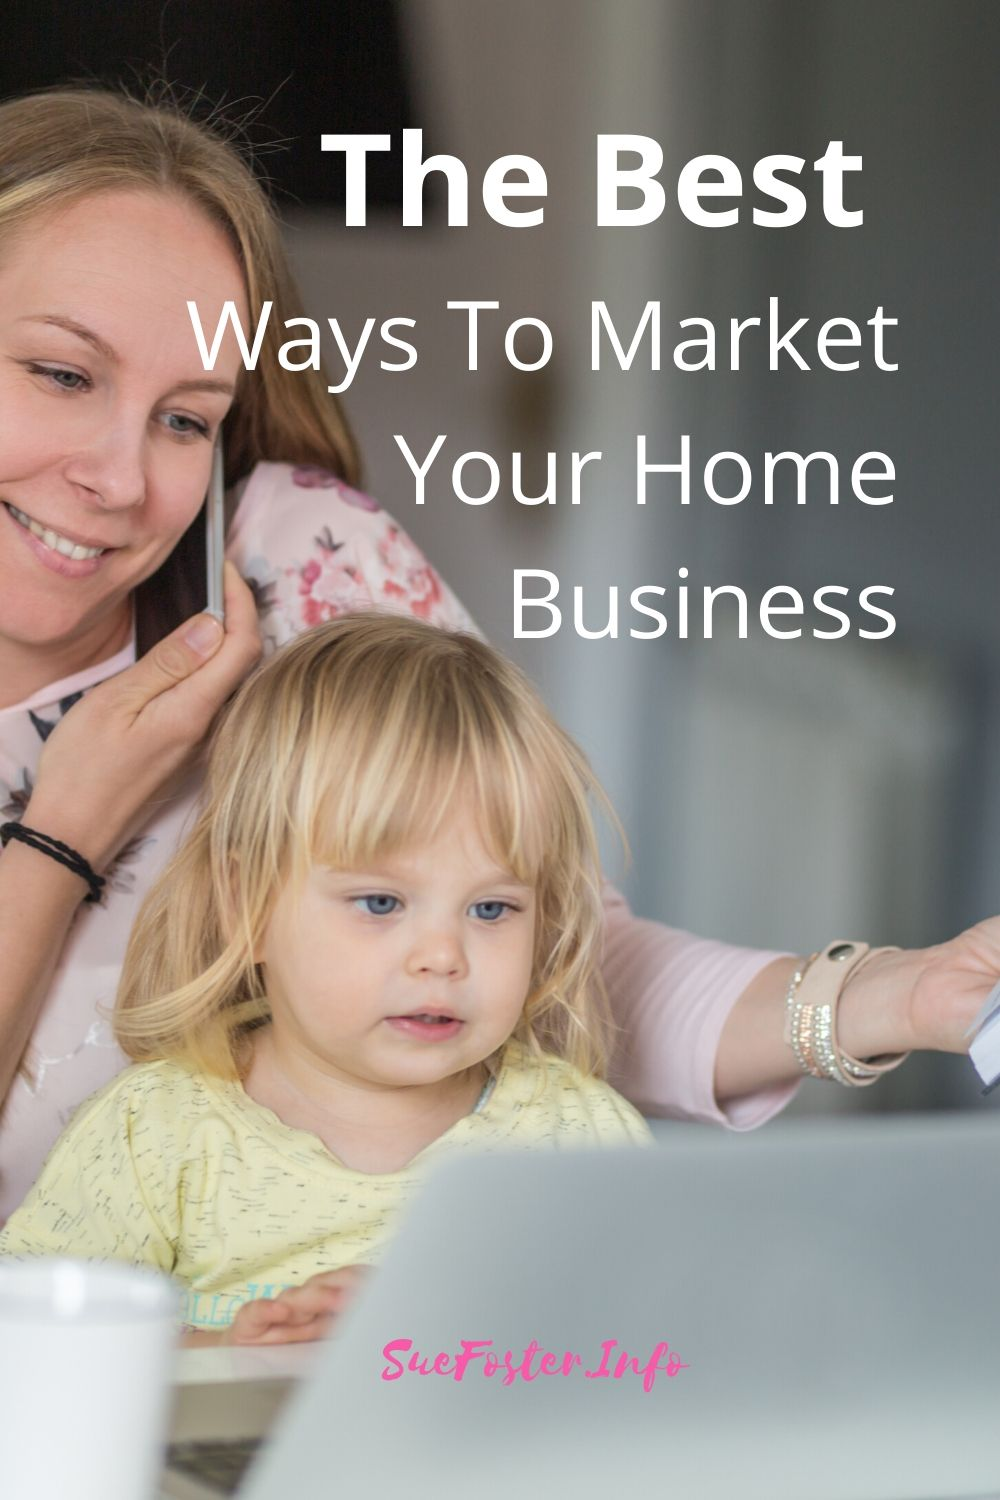 The Best Ways To Market Your Home Business